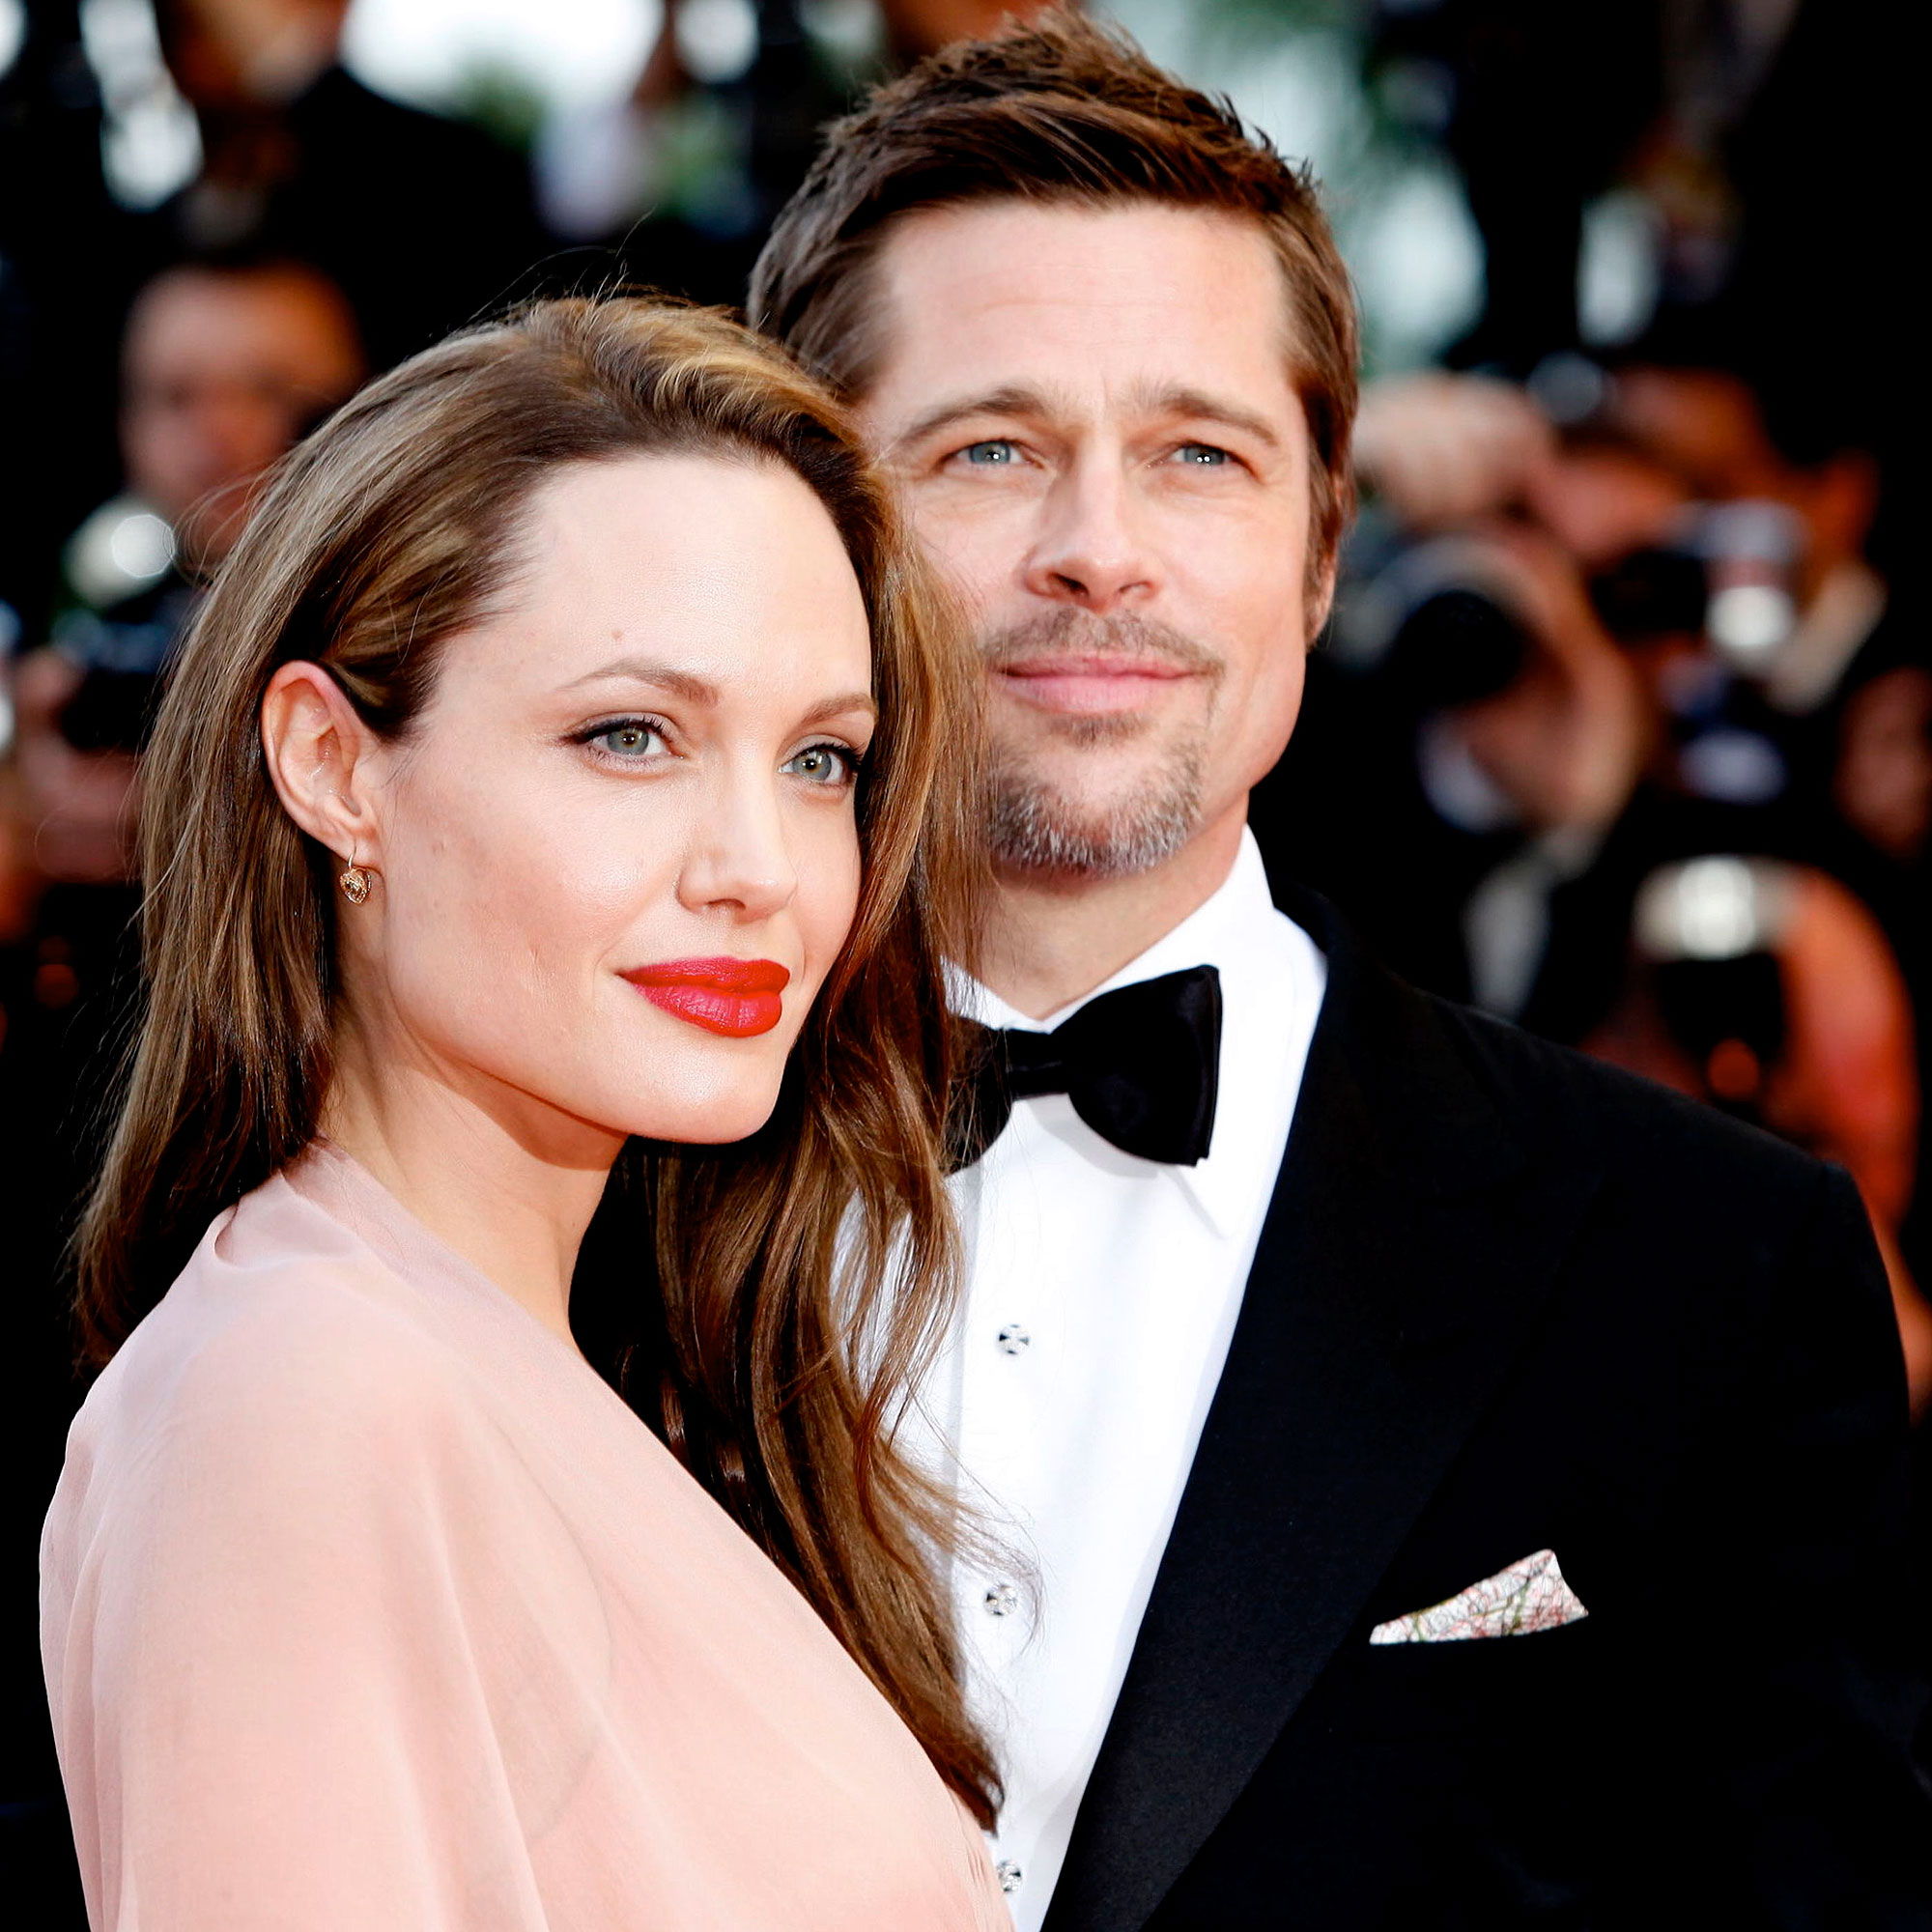 Brad Pitt and Angelina Jolie (2016)